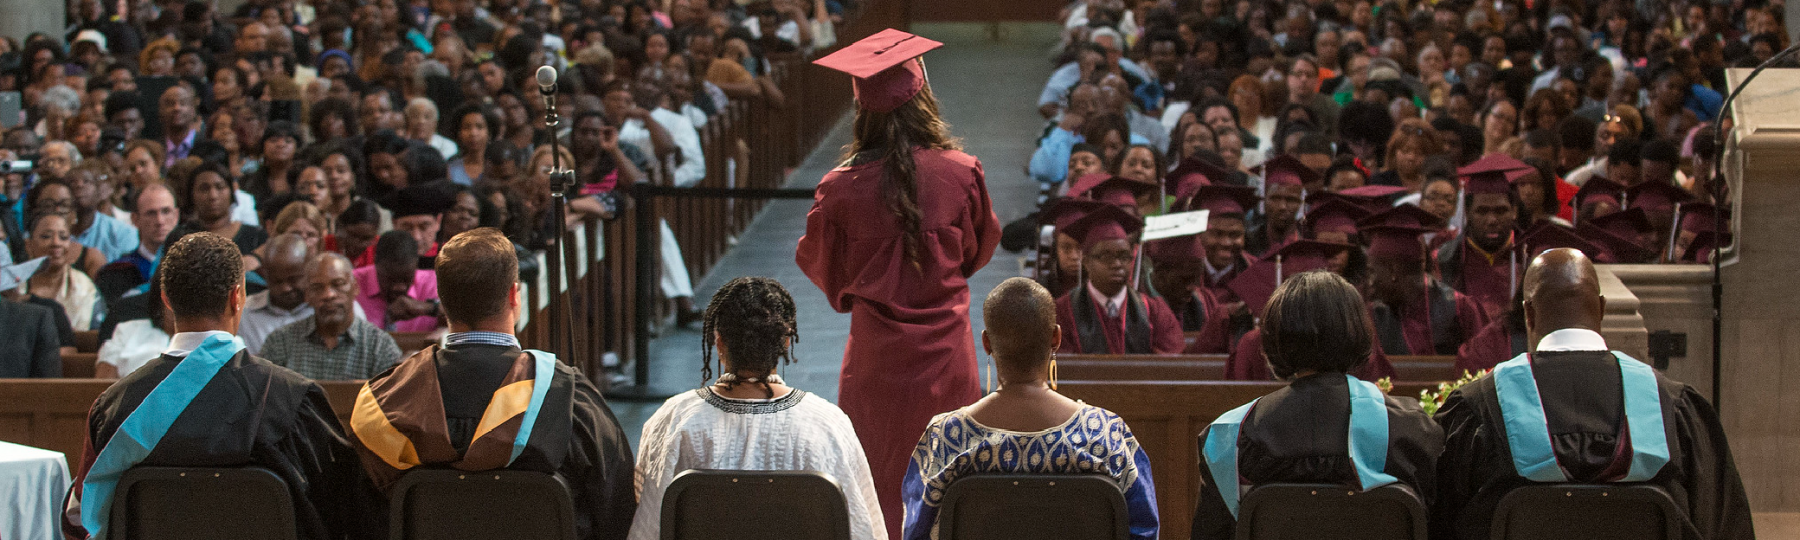 A high school senior gives her graduation speech at the ceremony